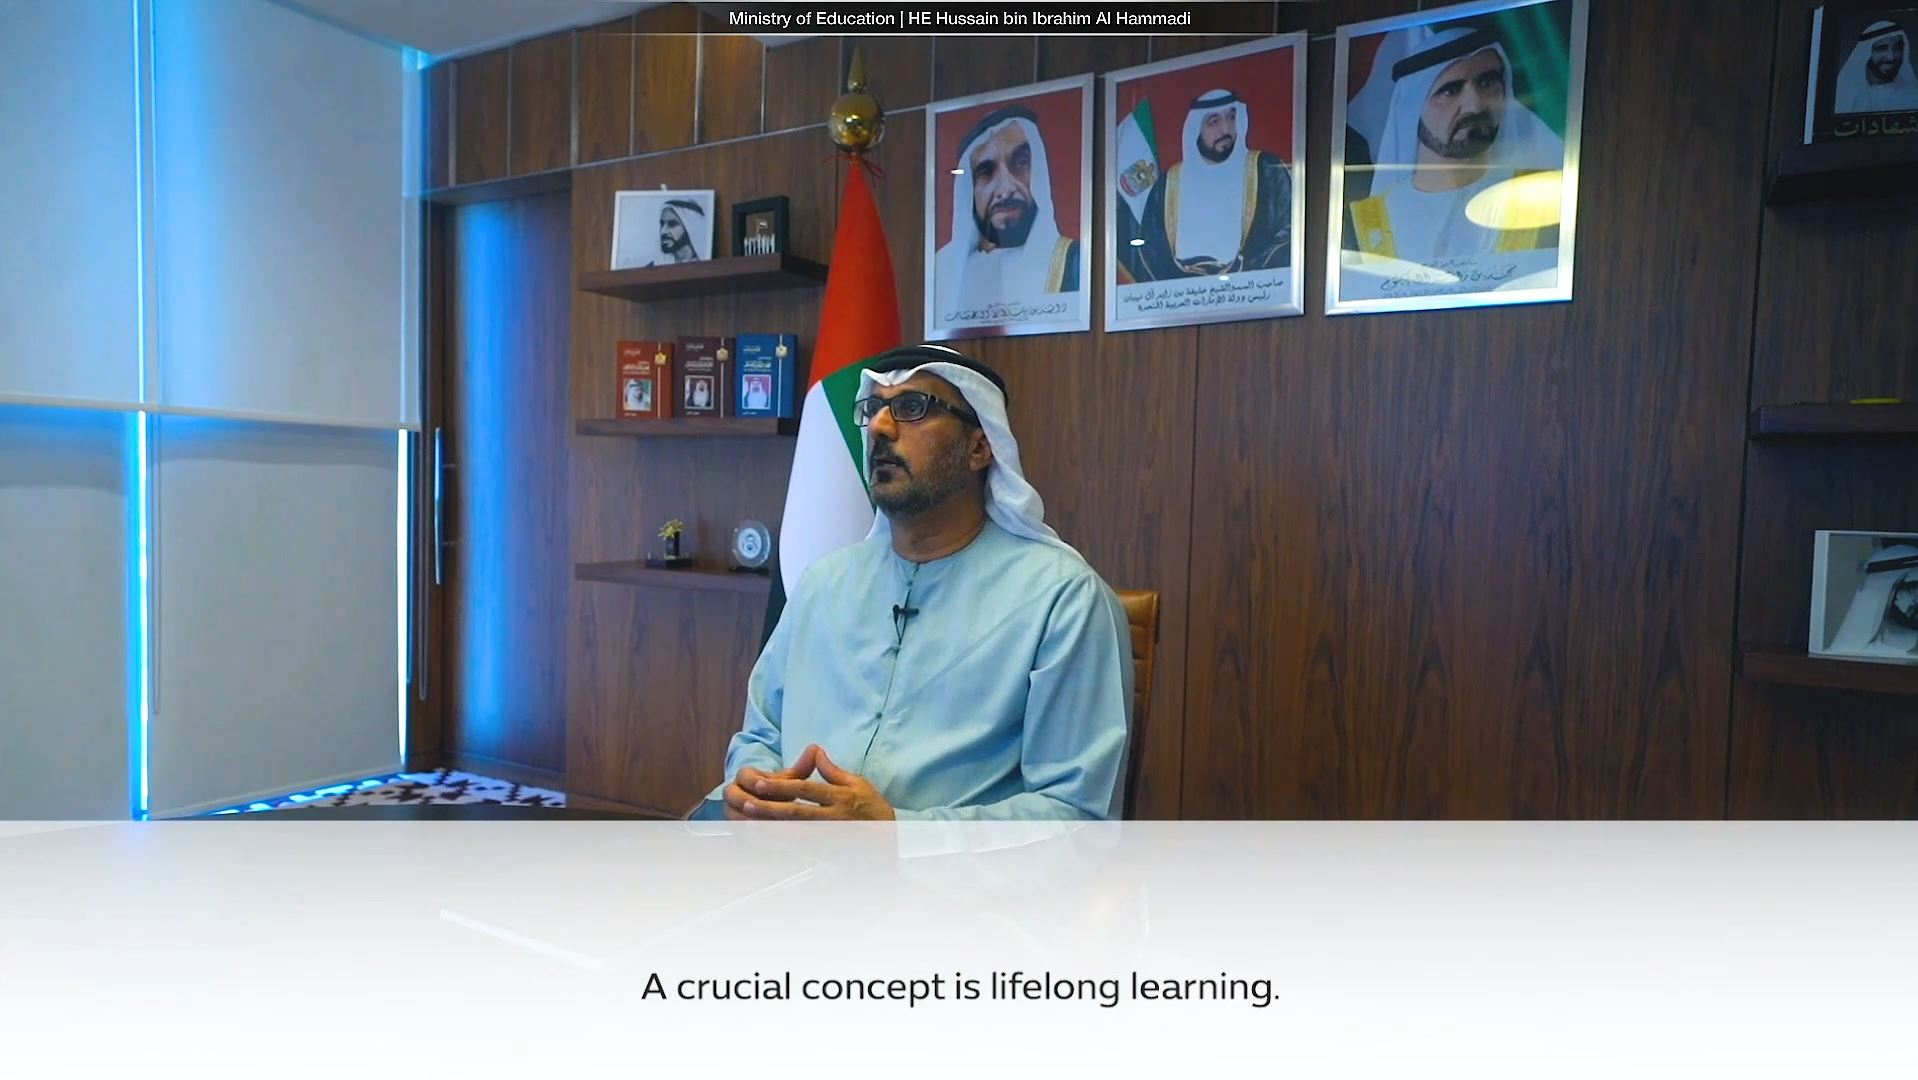 expo 2020 knowledge and learning week virtual event live feed speaker